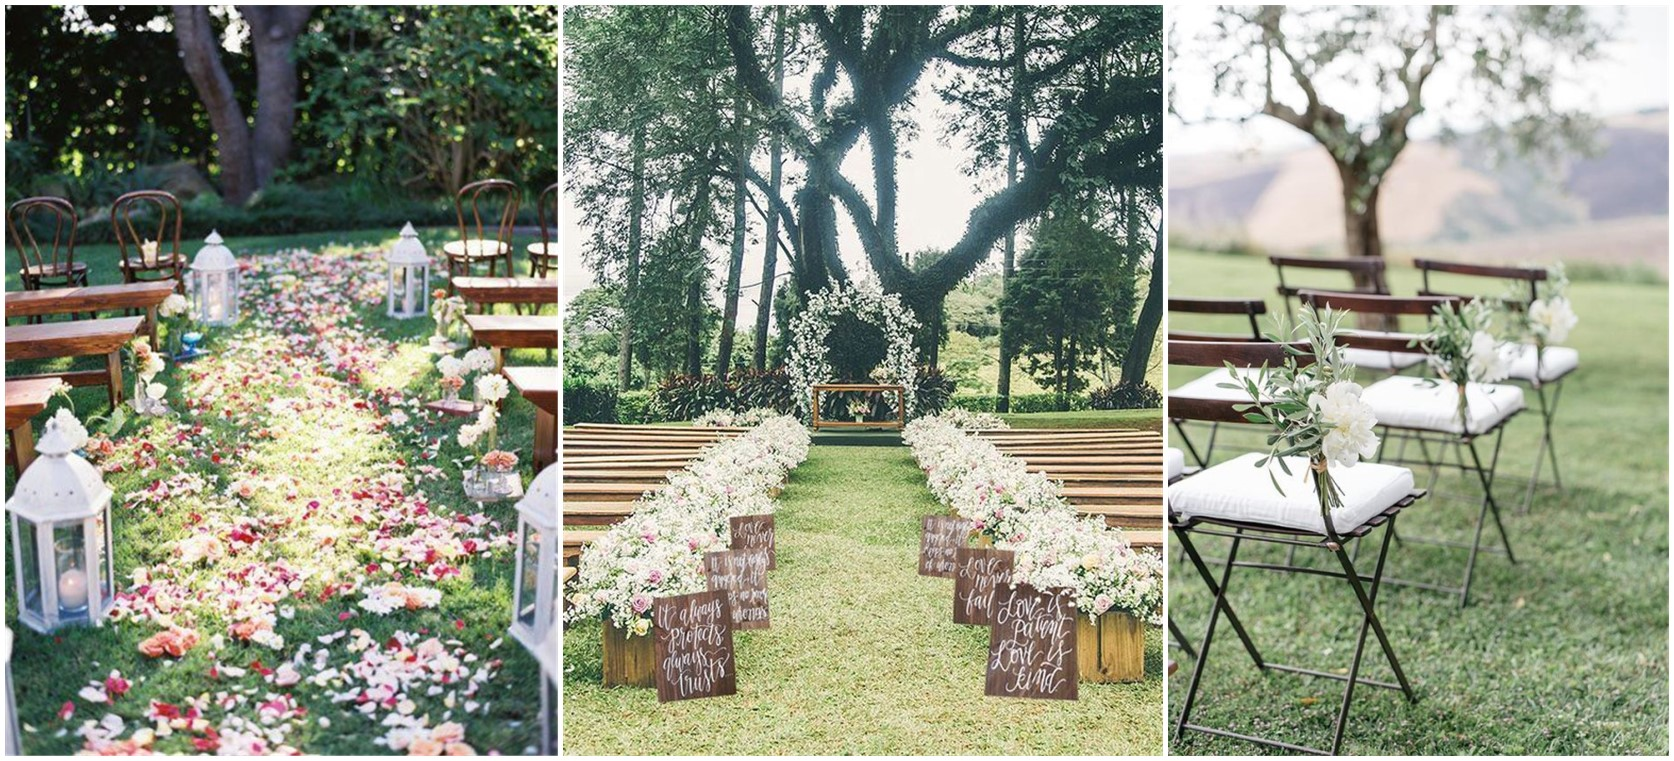 outside wedding decoration ideas for ceremony 25 rustic outdoor wedding ceremony decorations ideas 6339